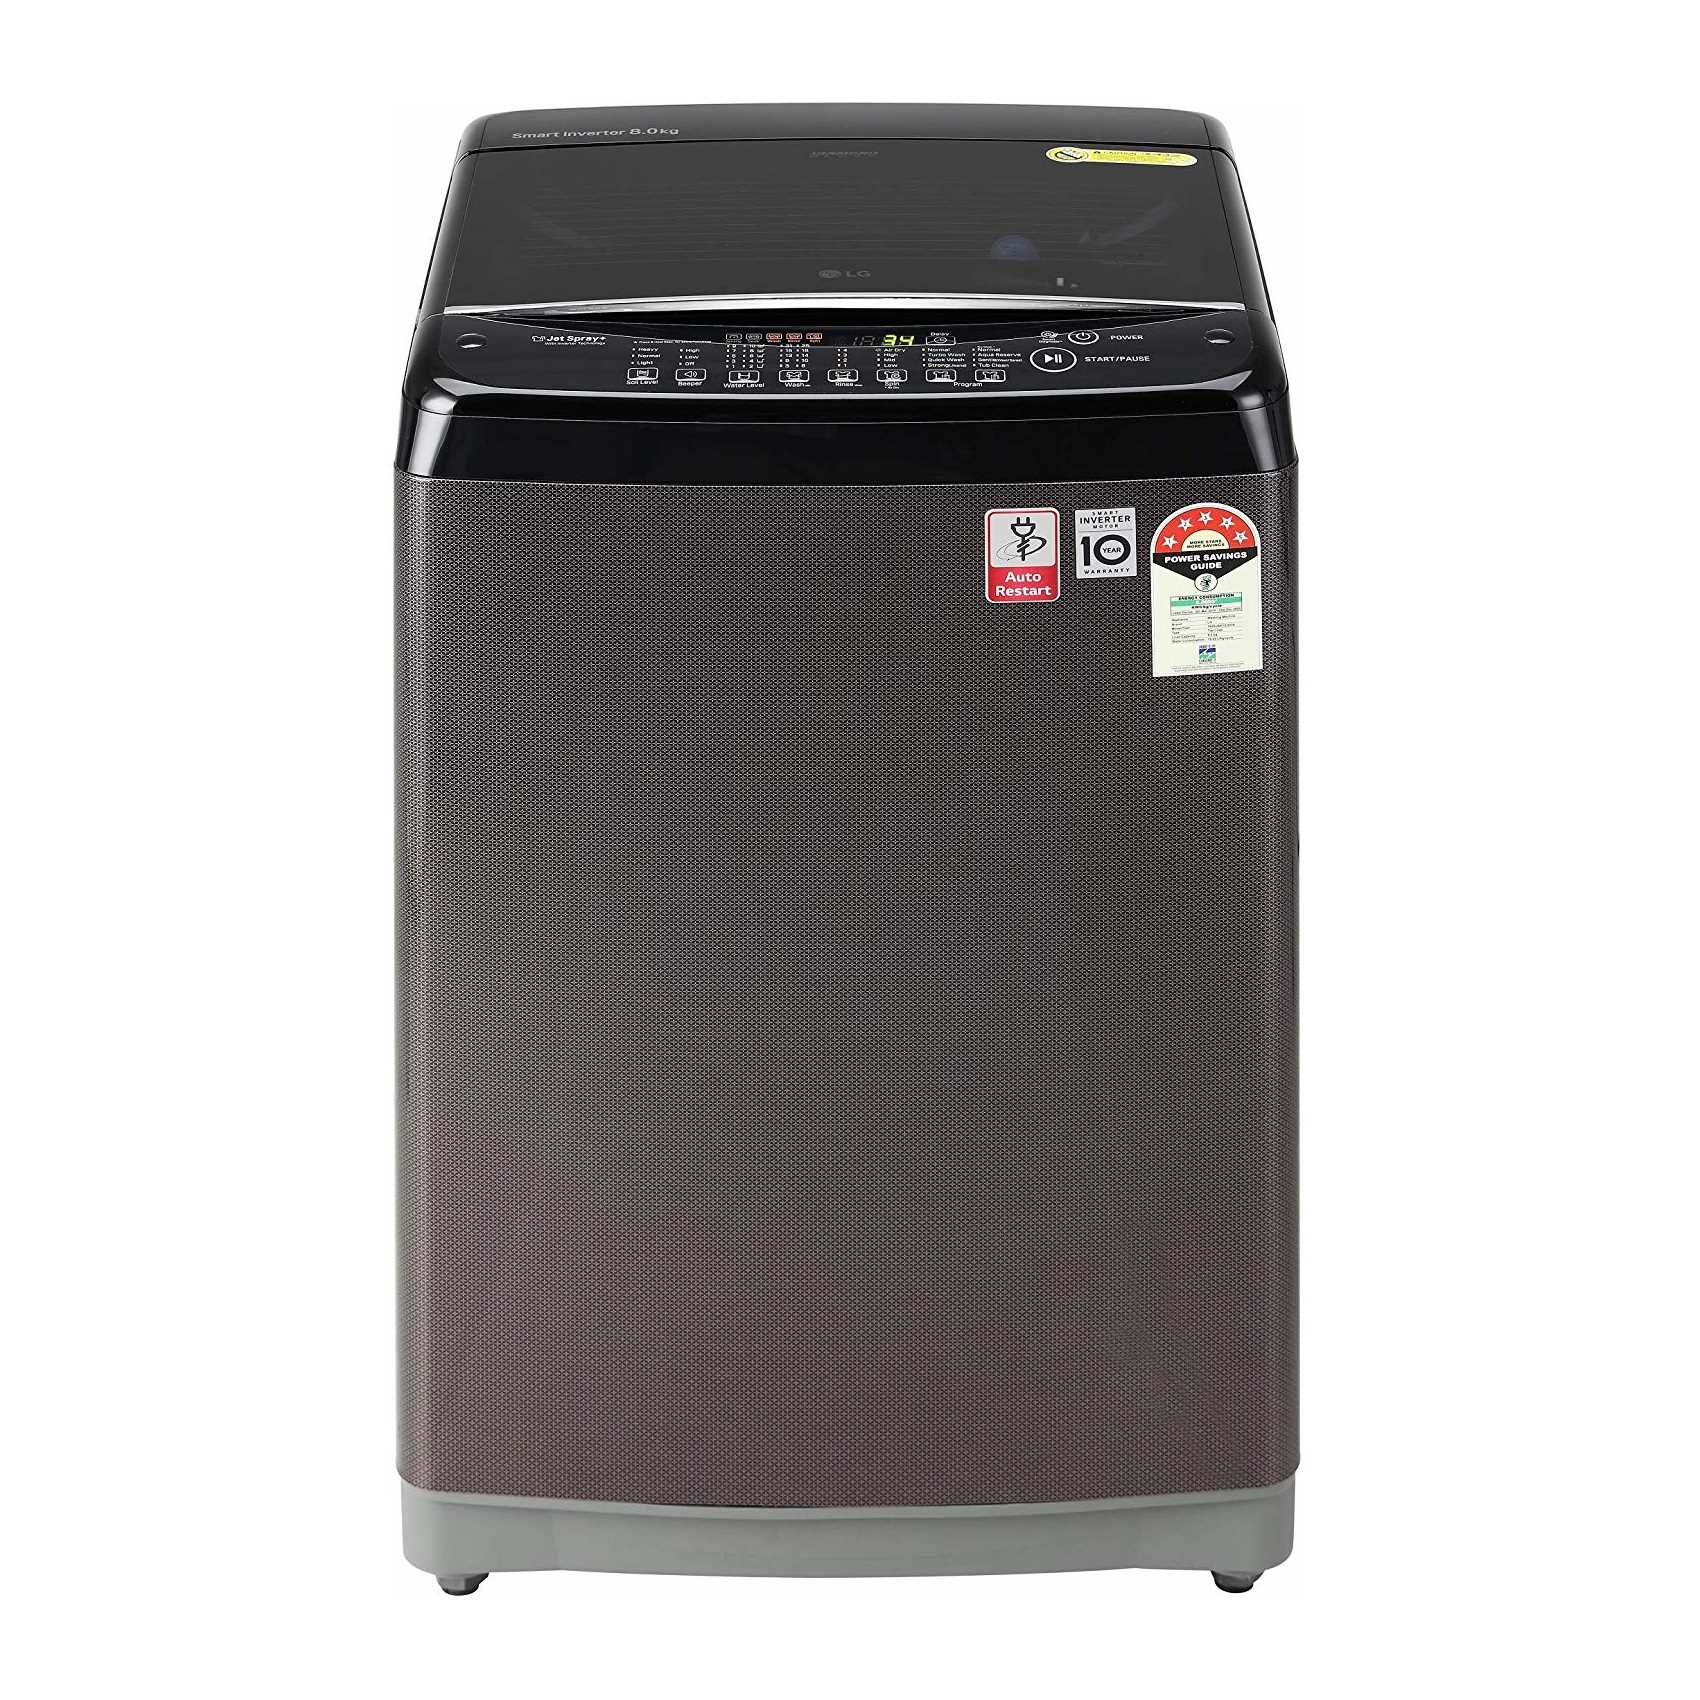 LG T80SJBK1Z 8 Kg Fully Automatic Top Loading Washing Machine